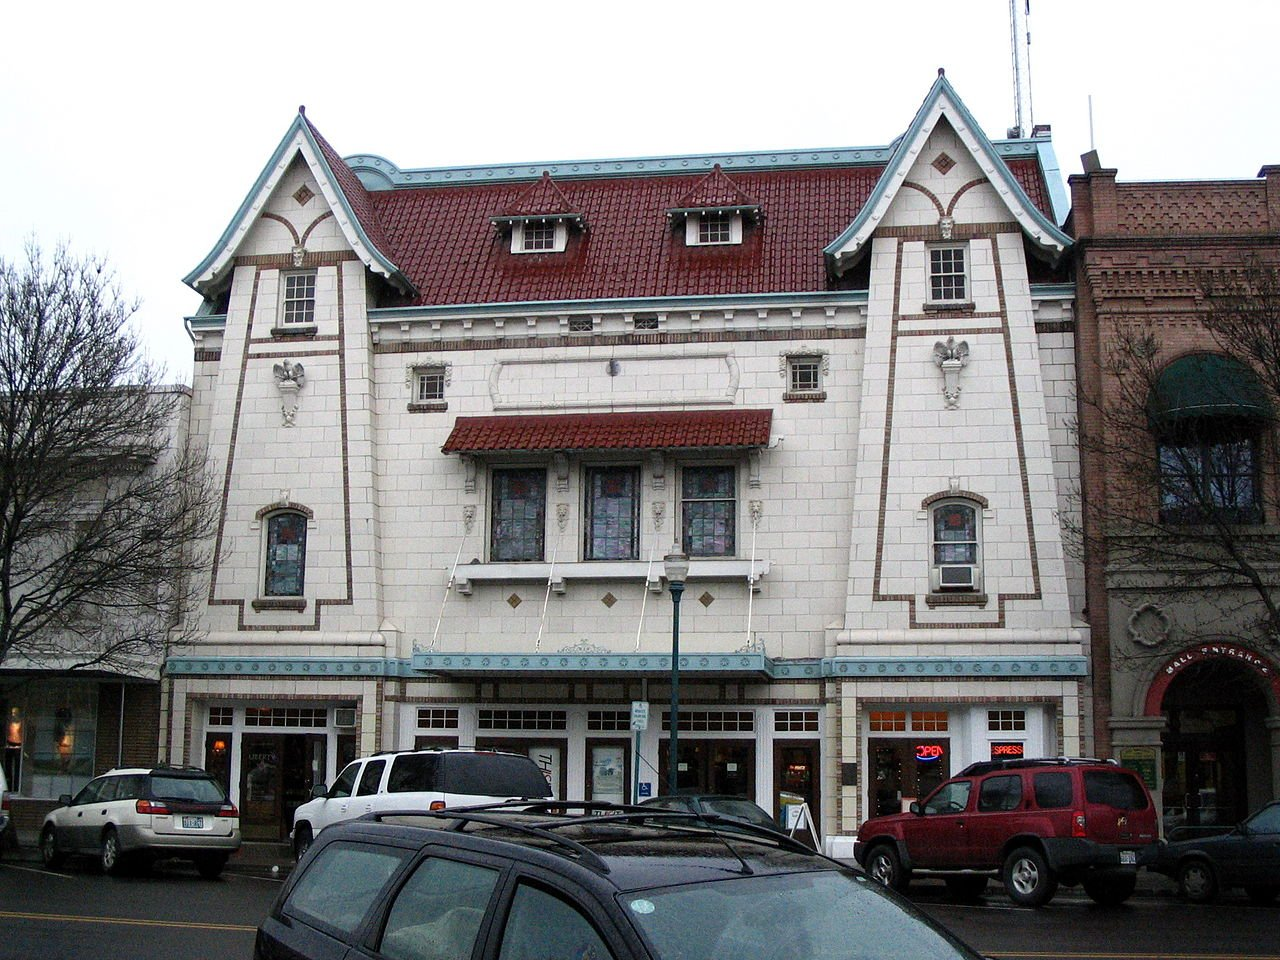 The American Theater in Walla Walla opened in 1917.